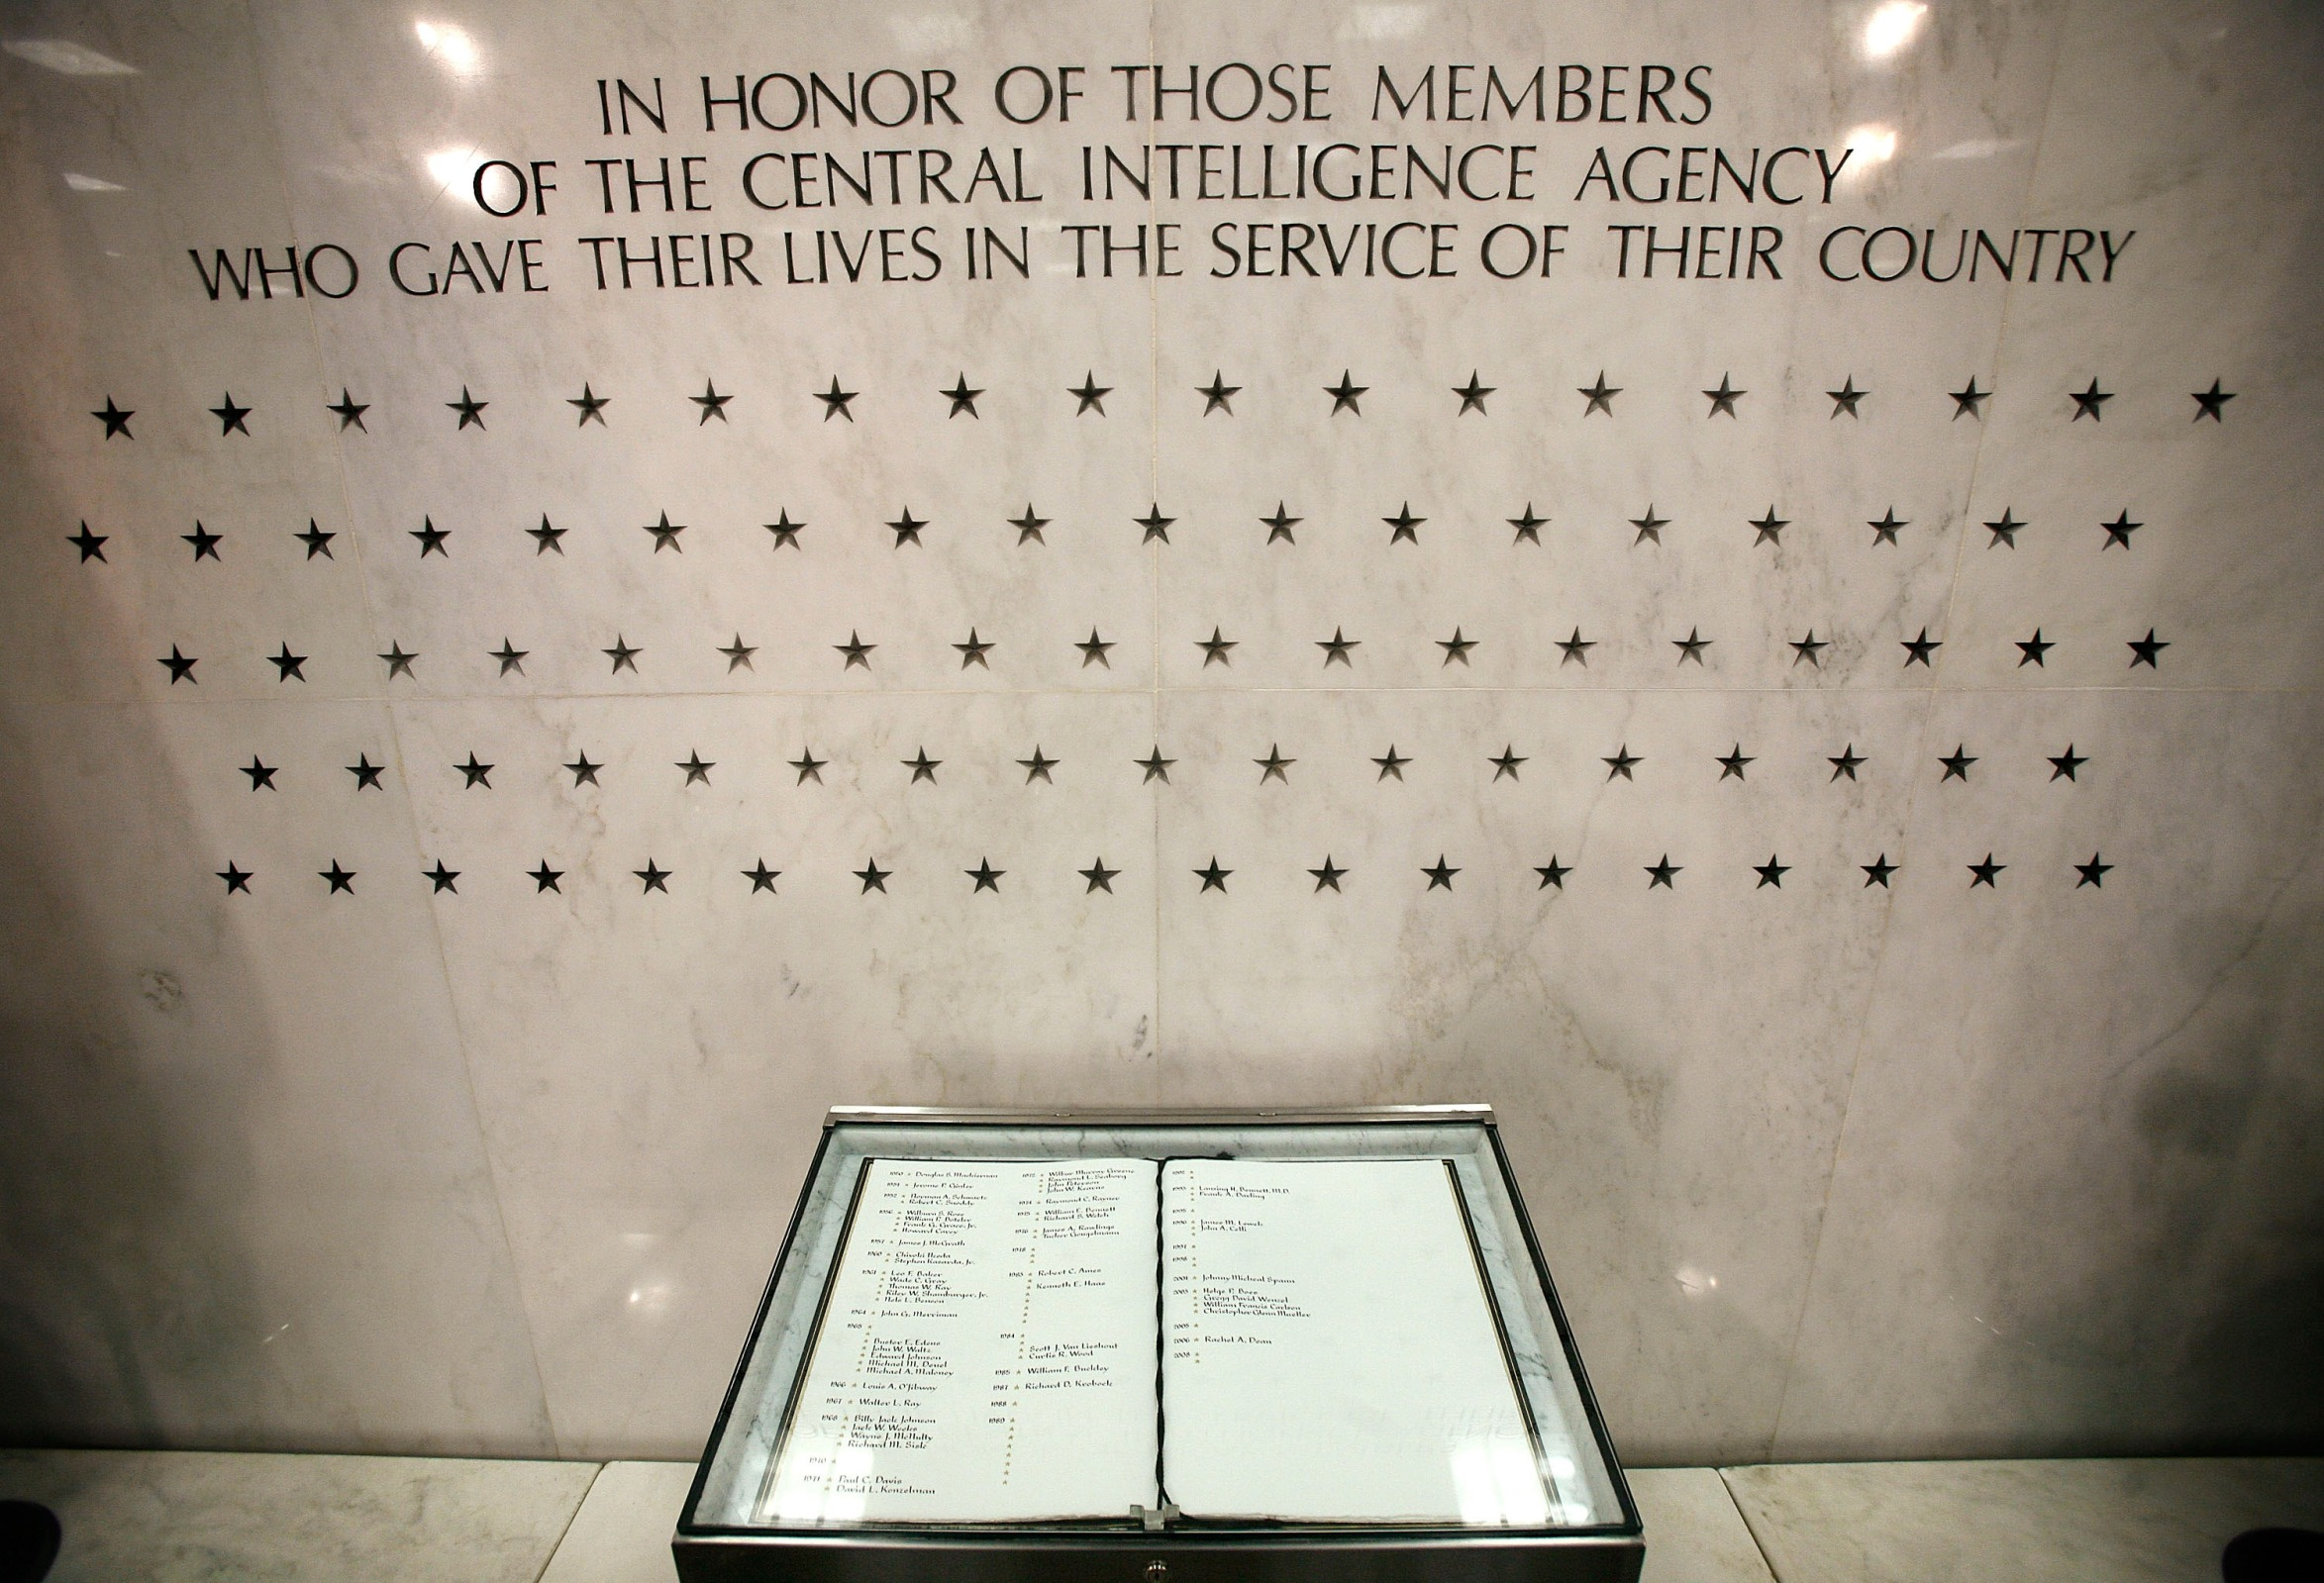 """MCLEAN, VA - FEBRUARY 19: The Memorial Wall and the """"Book of Honor"""" are seen in the lobby of the Original Headquarters Building at the Central Intelligence Agency headquarters February 19, 2009 in McLean, Virginia. The stars on the wall represent the number of CIA officers who have lost their lives for the country. (Photo by Alex Wong/Getty Images)"""